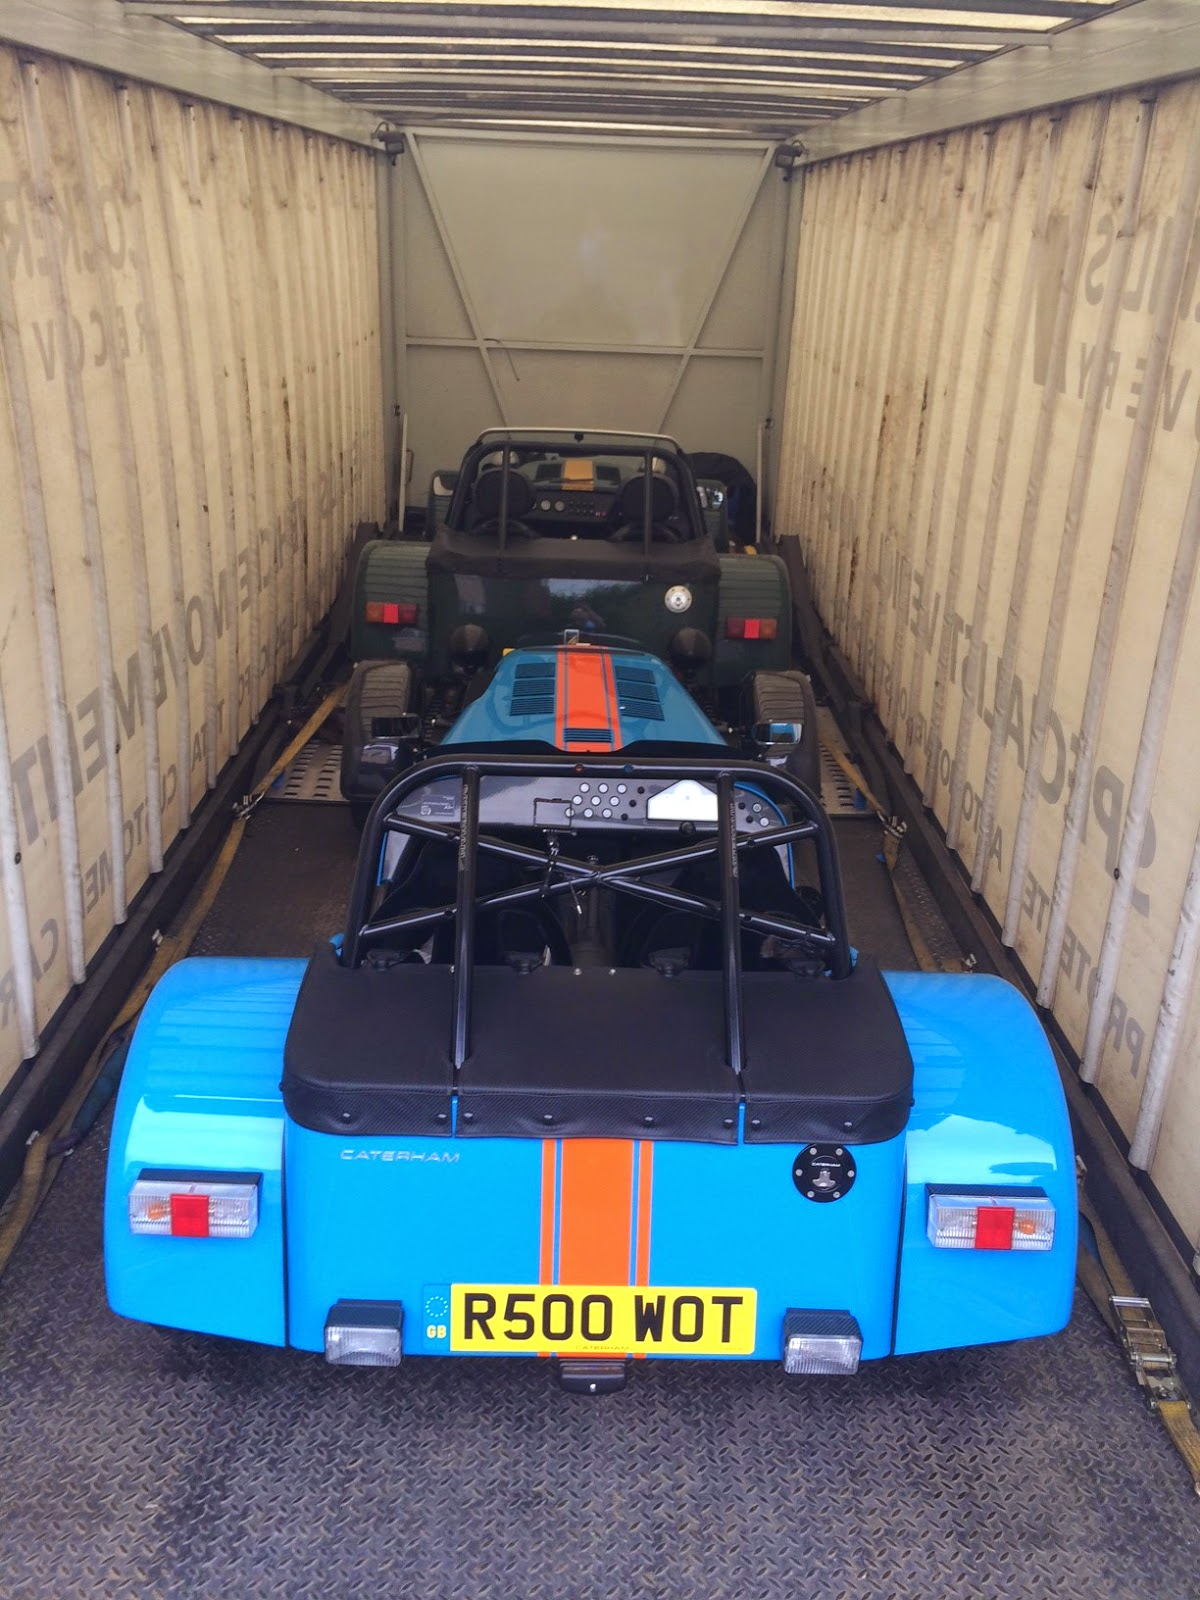 My R500 and Caterham's demonstrator on car transporter